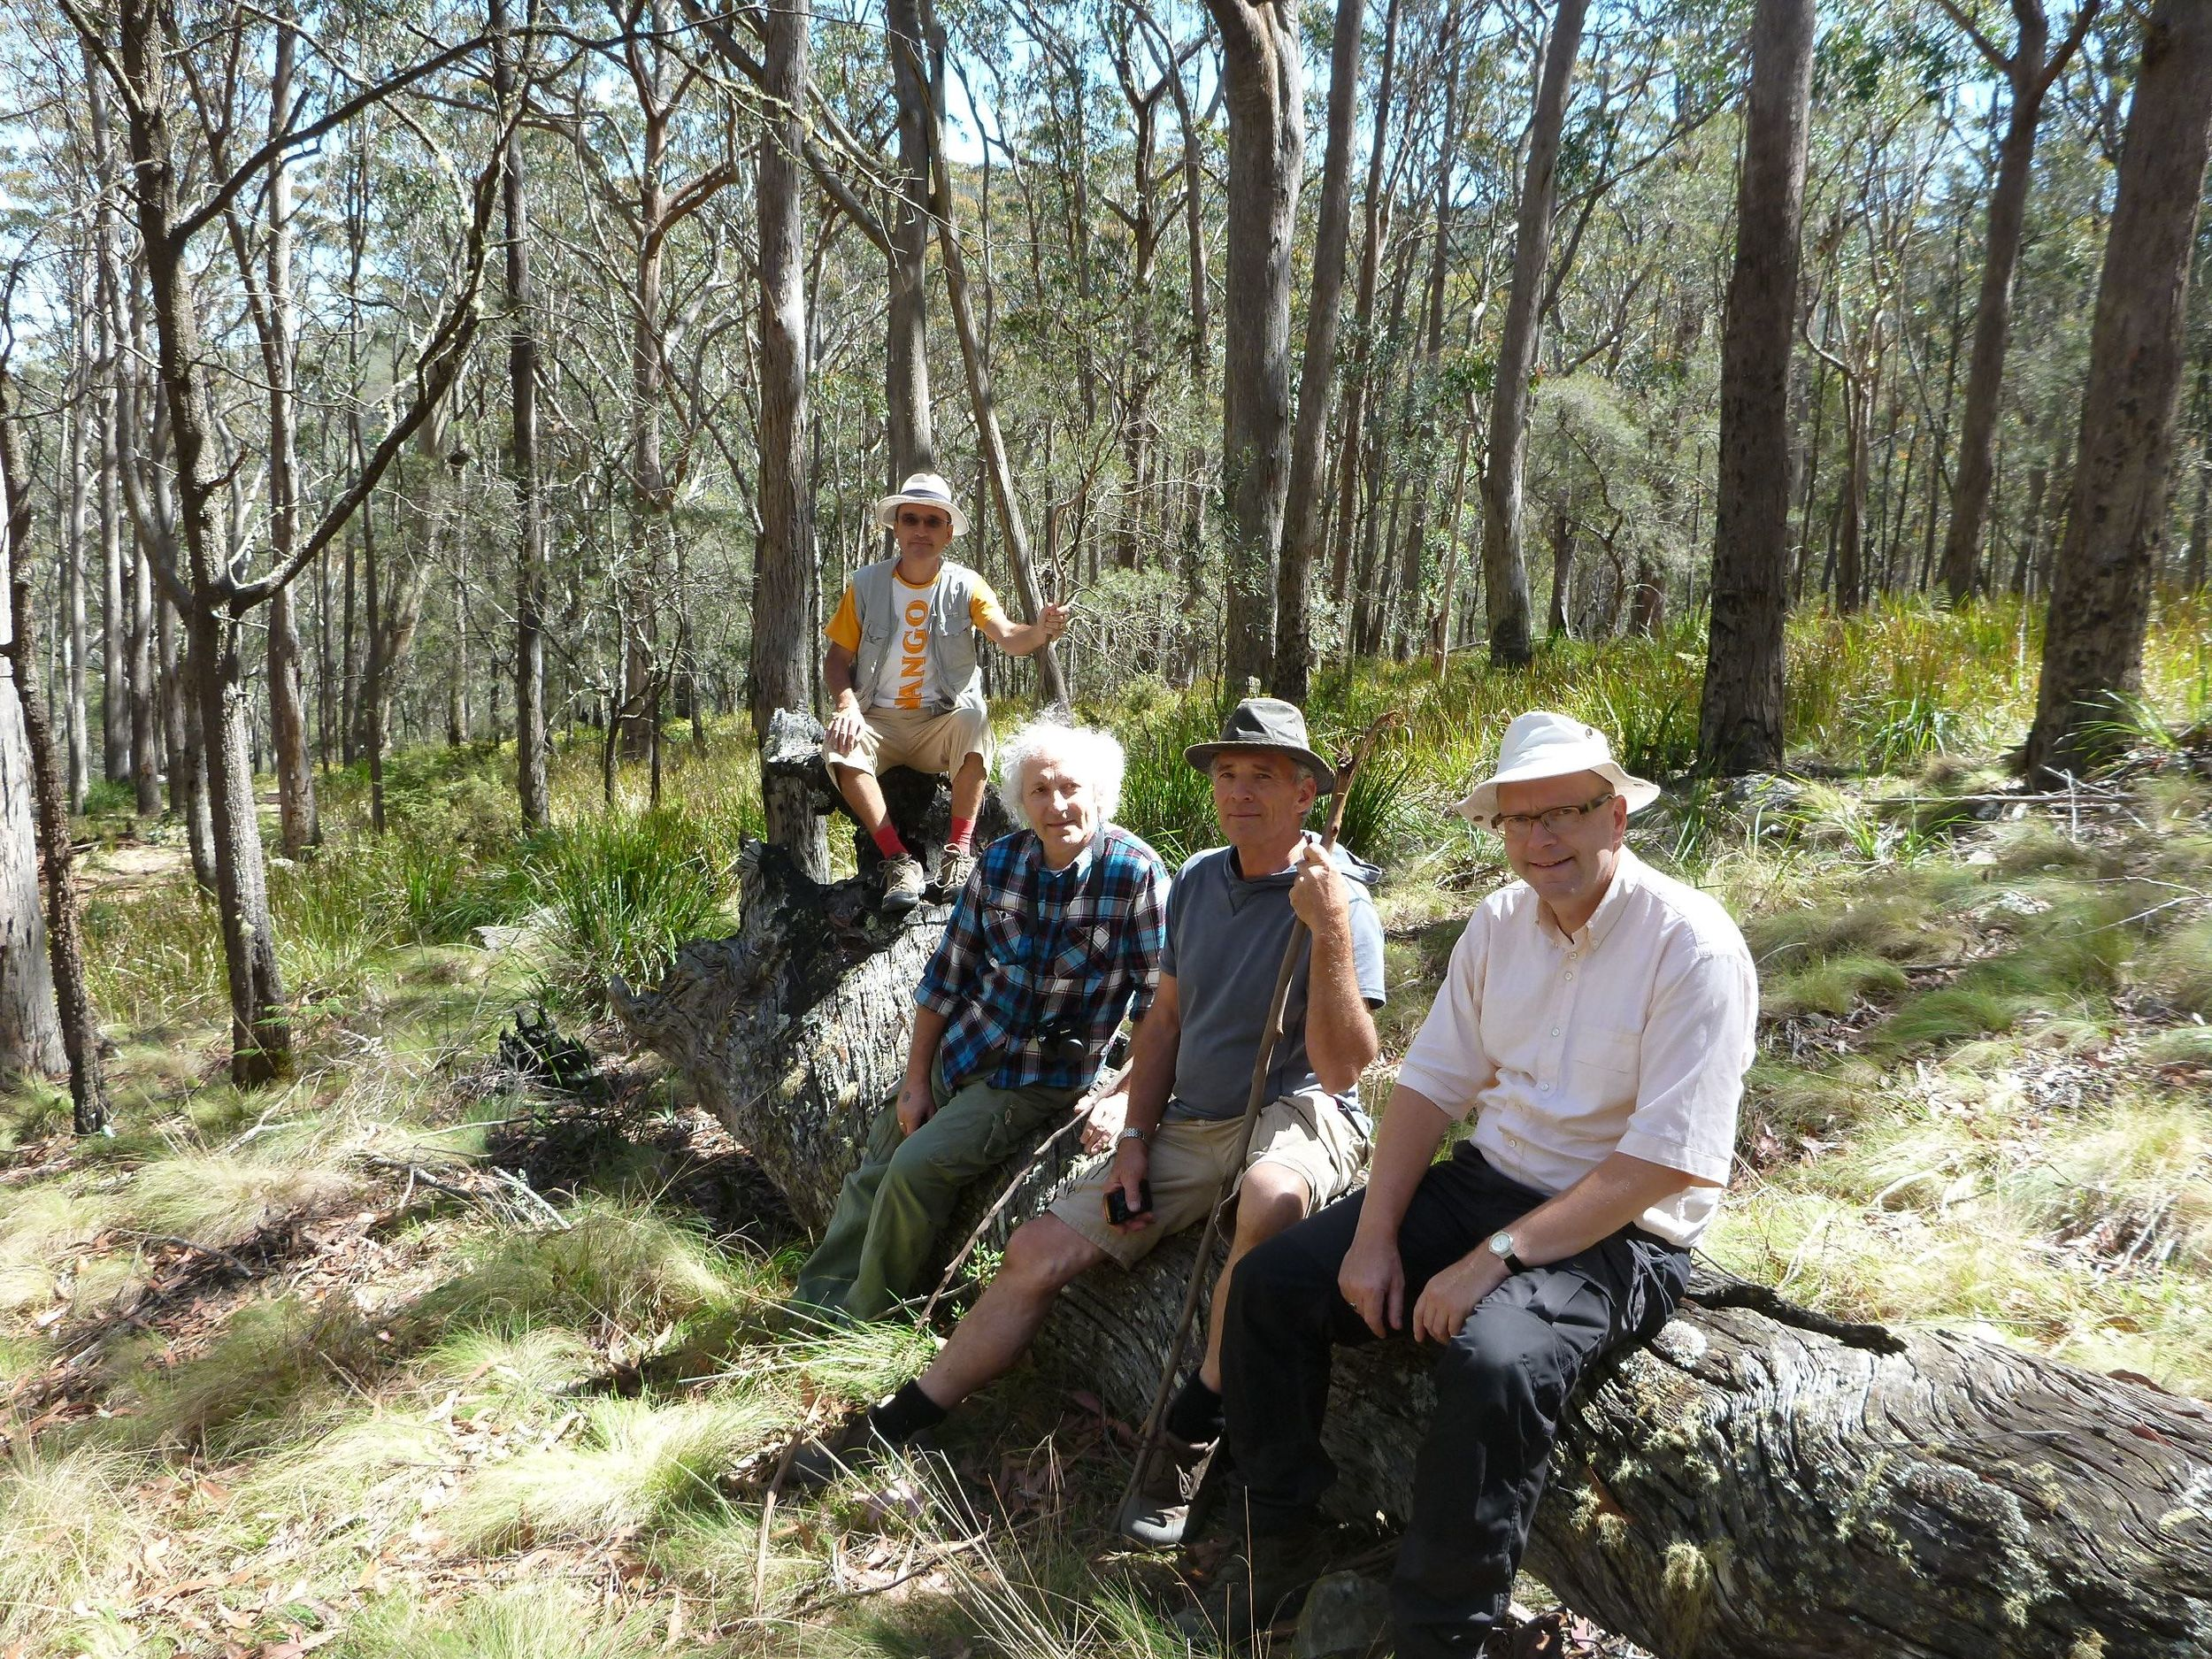 Environmentalists from germany, belgium and austria on a forest discovery retreat